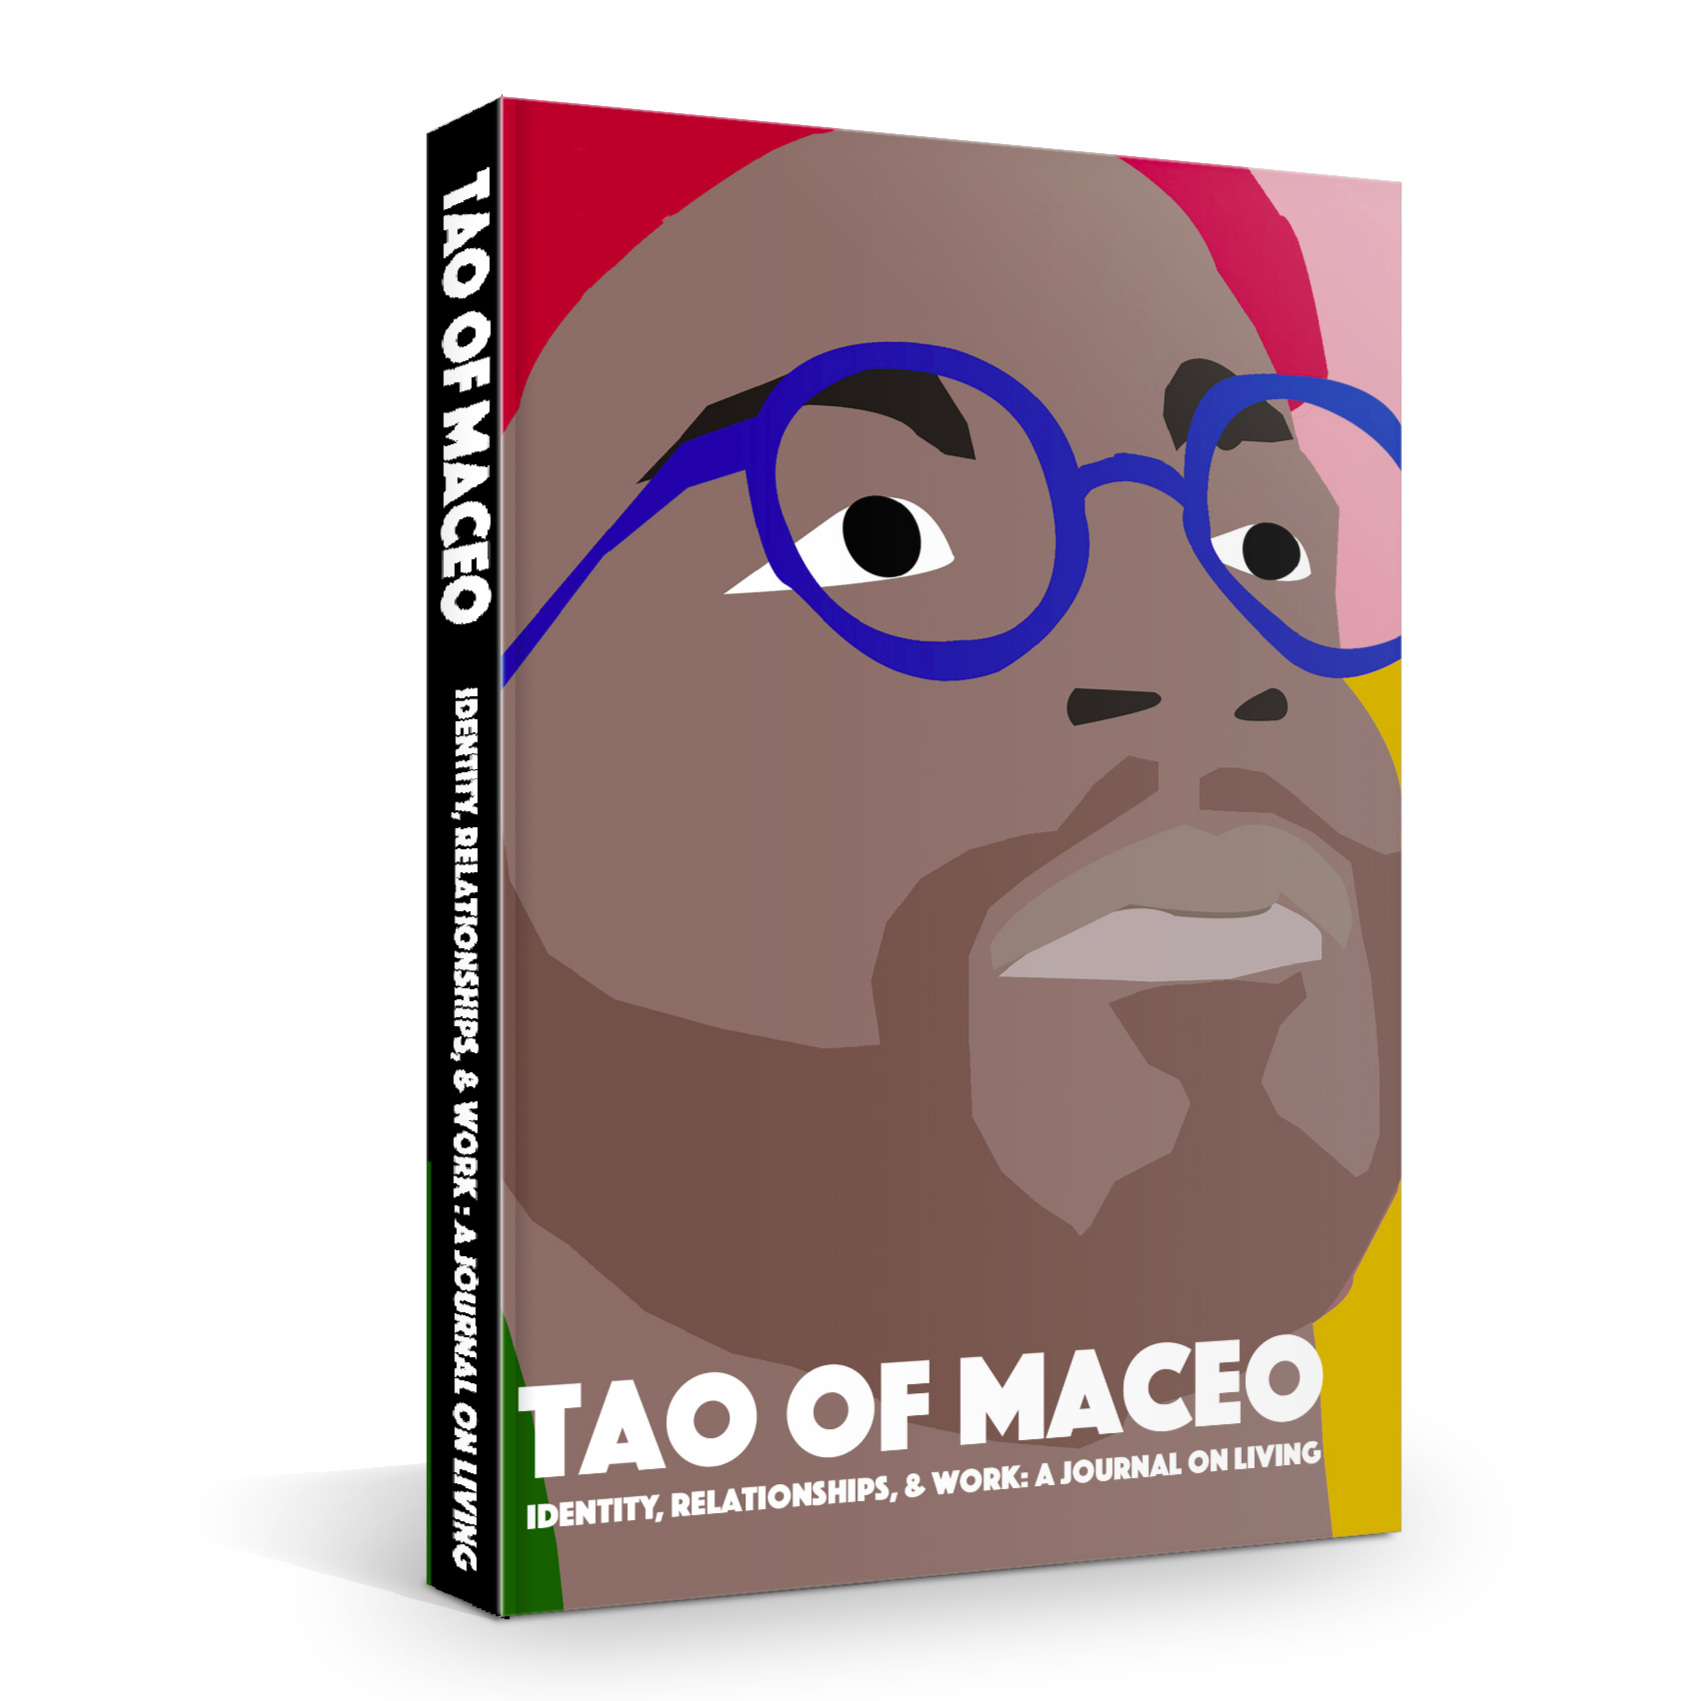 Tao+of+Maceo_Cover_shop.jpg